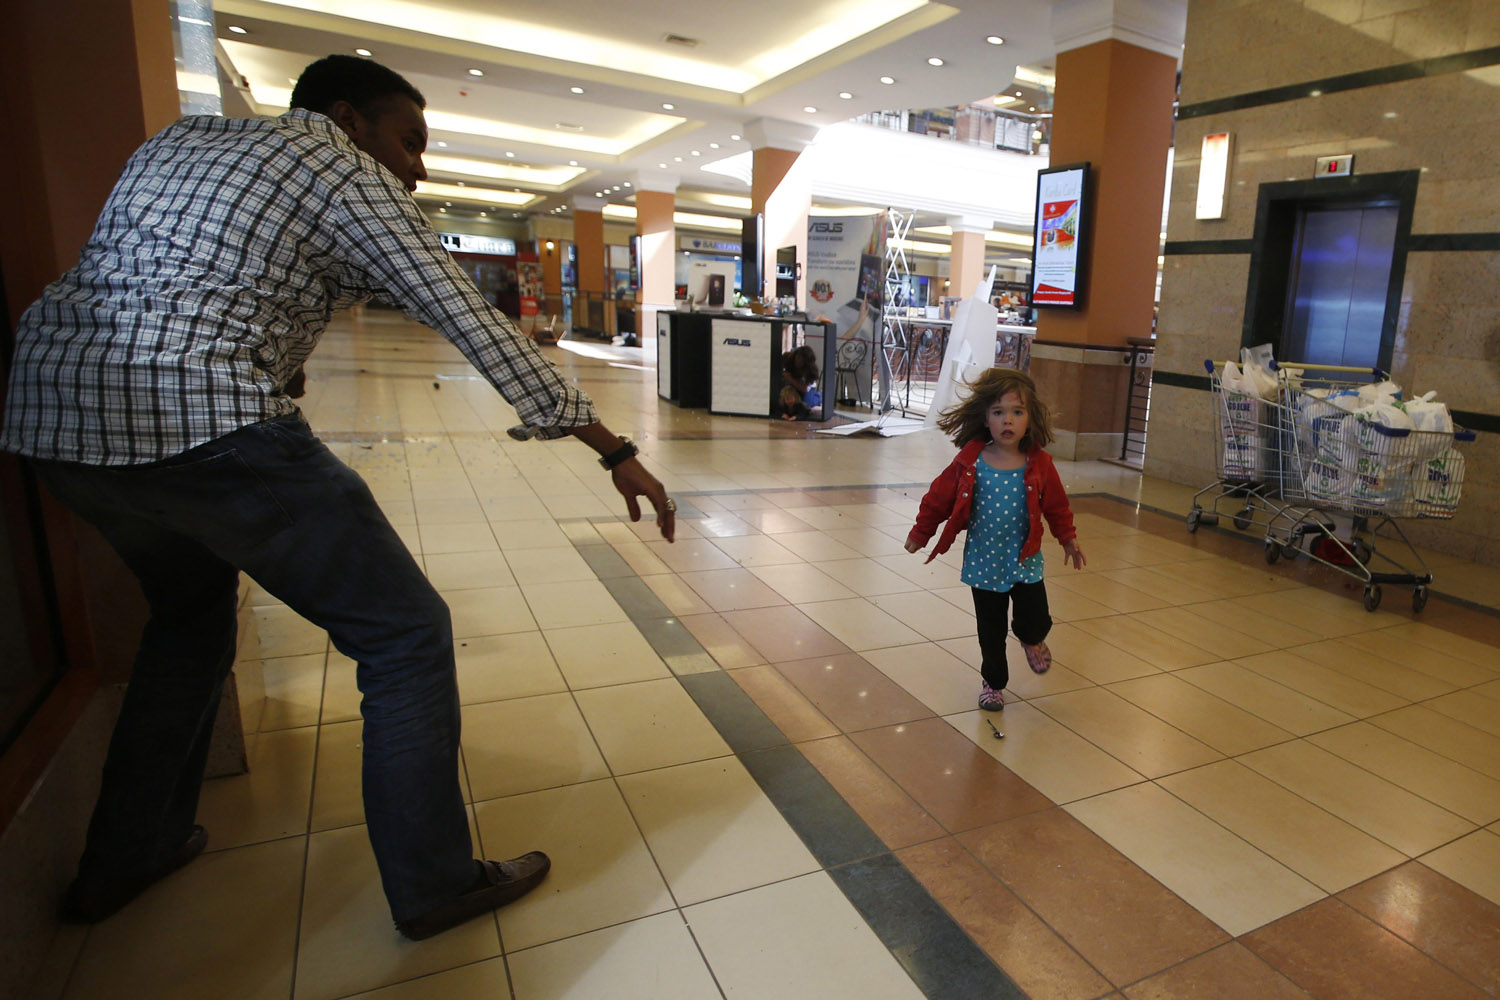 Sept. 21, 2013. A child runs to safety as armed police hunt gunmen who went on a shooting spree at Westgate Shopping Center in Nairobi, Kenya.